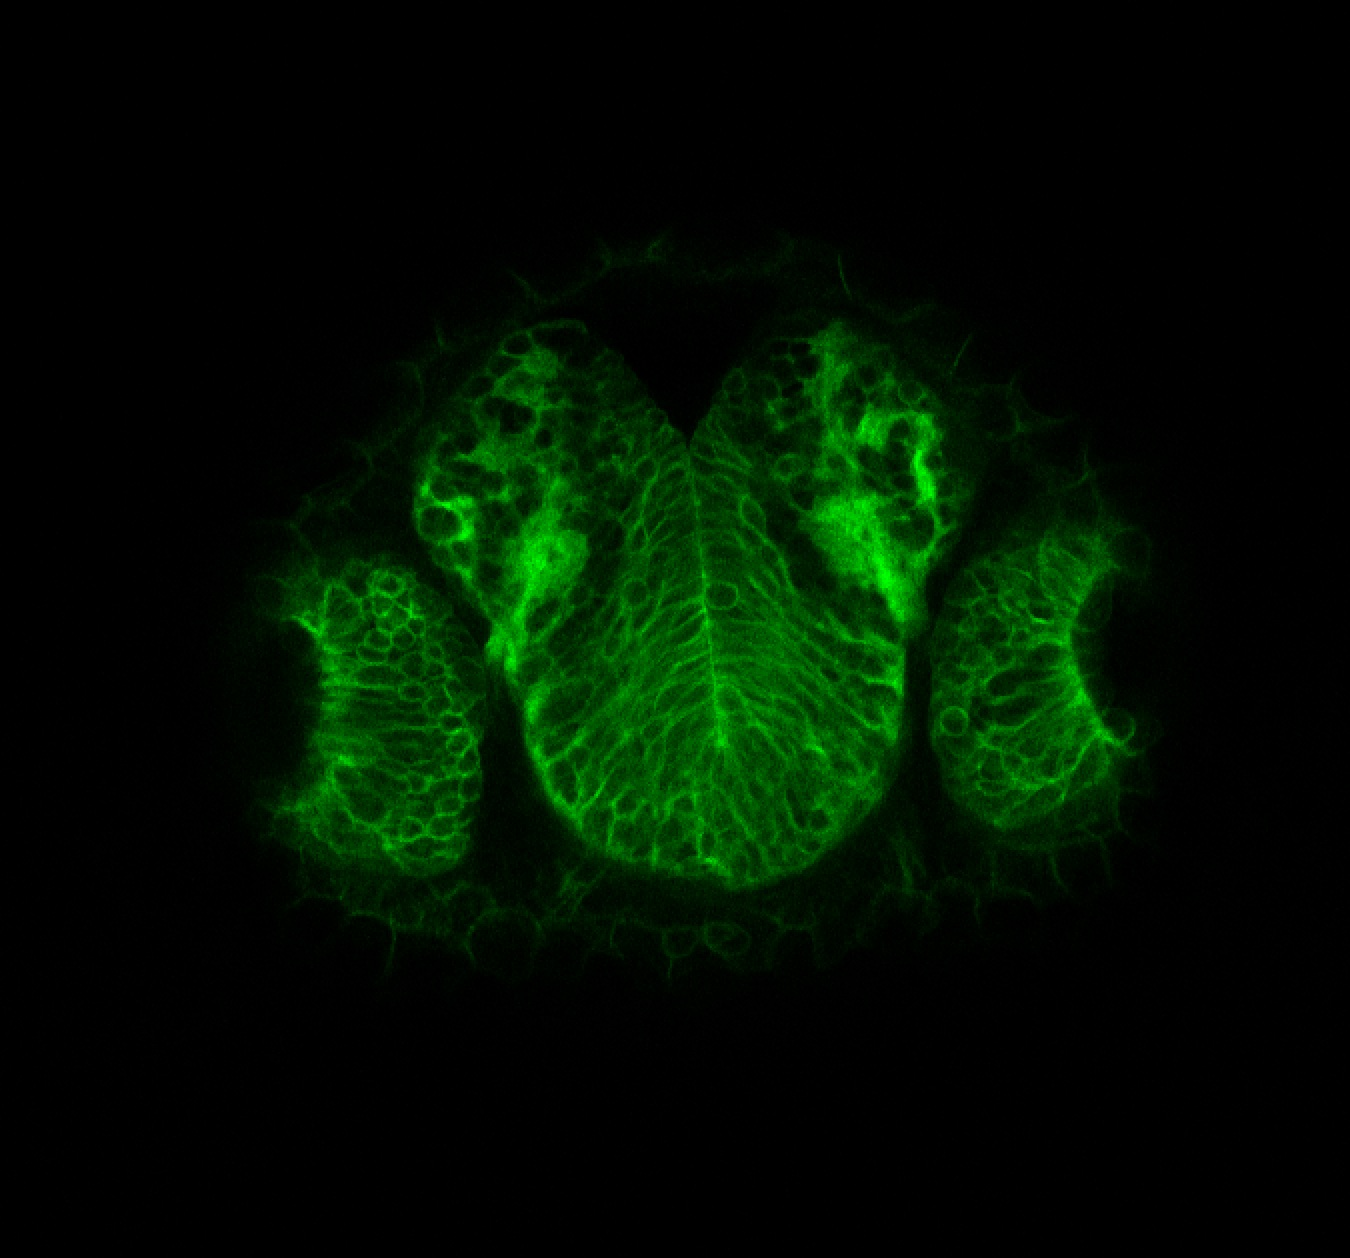 Tg(-8.0cldnb:lynGFP)zf106 2dpf frontal transverse section through the telencephalon